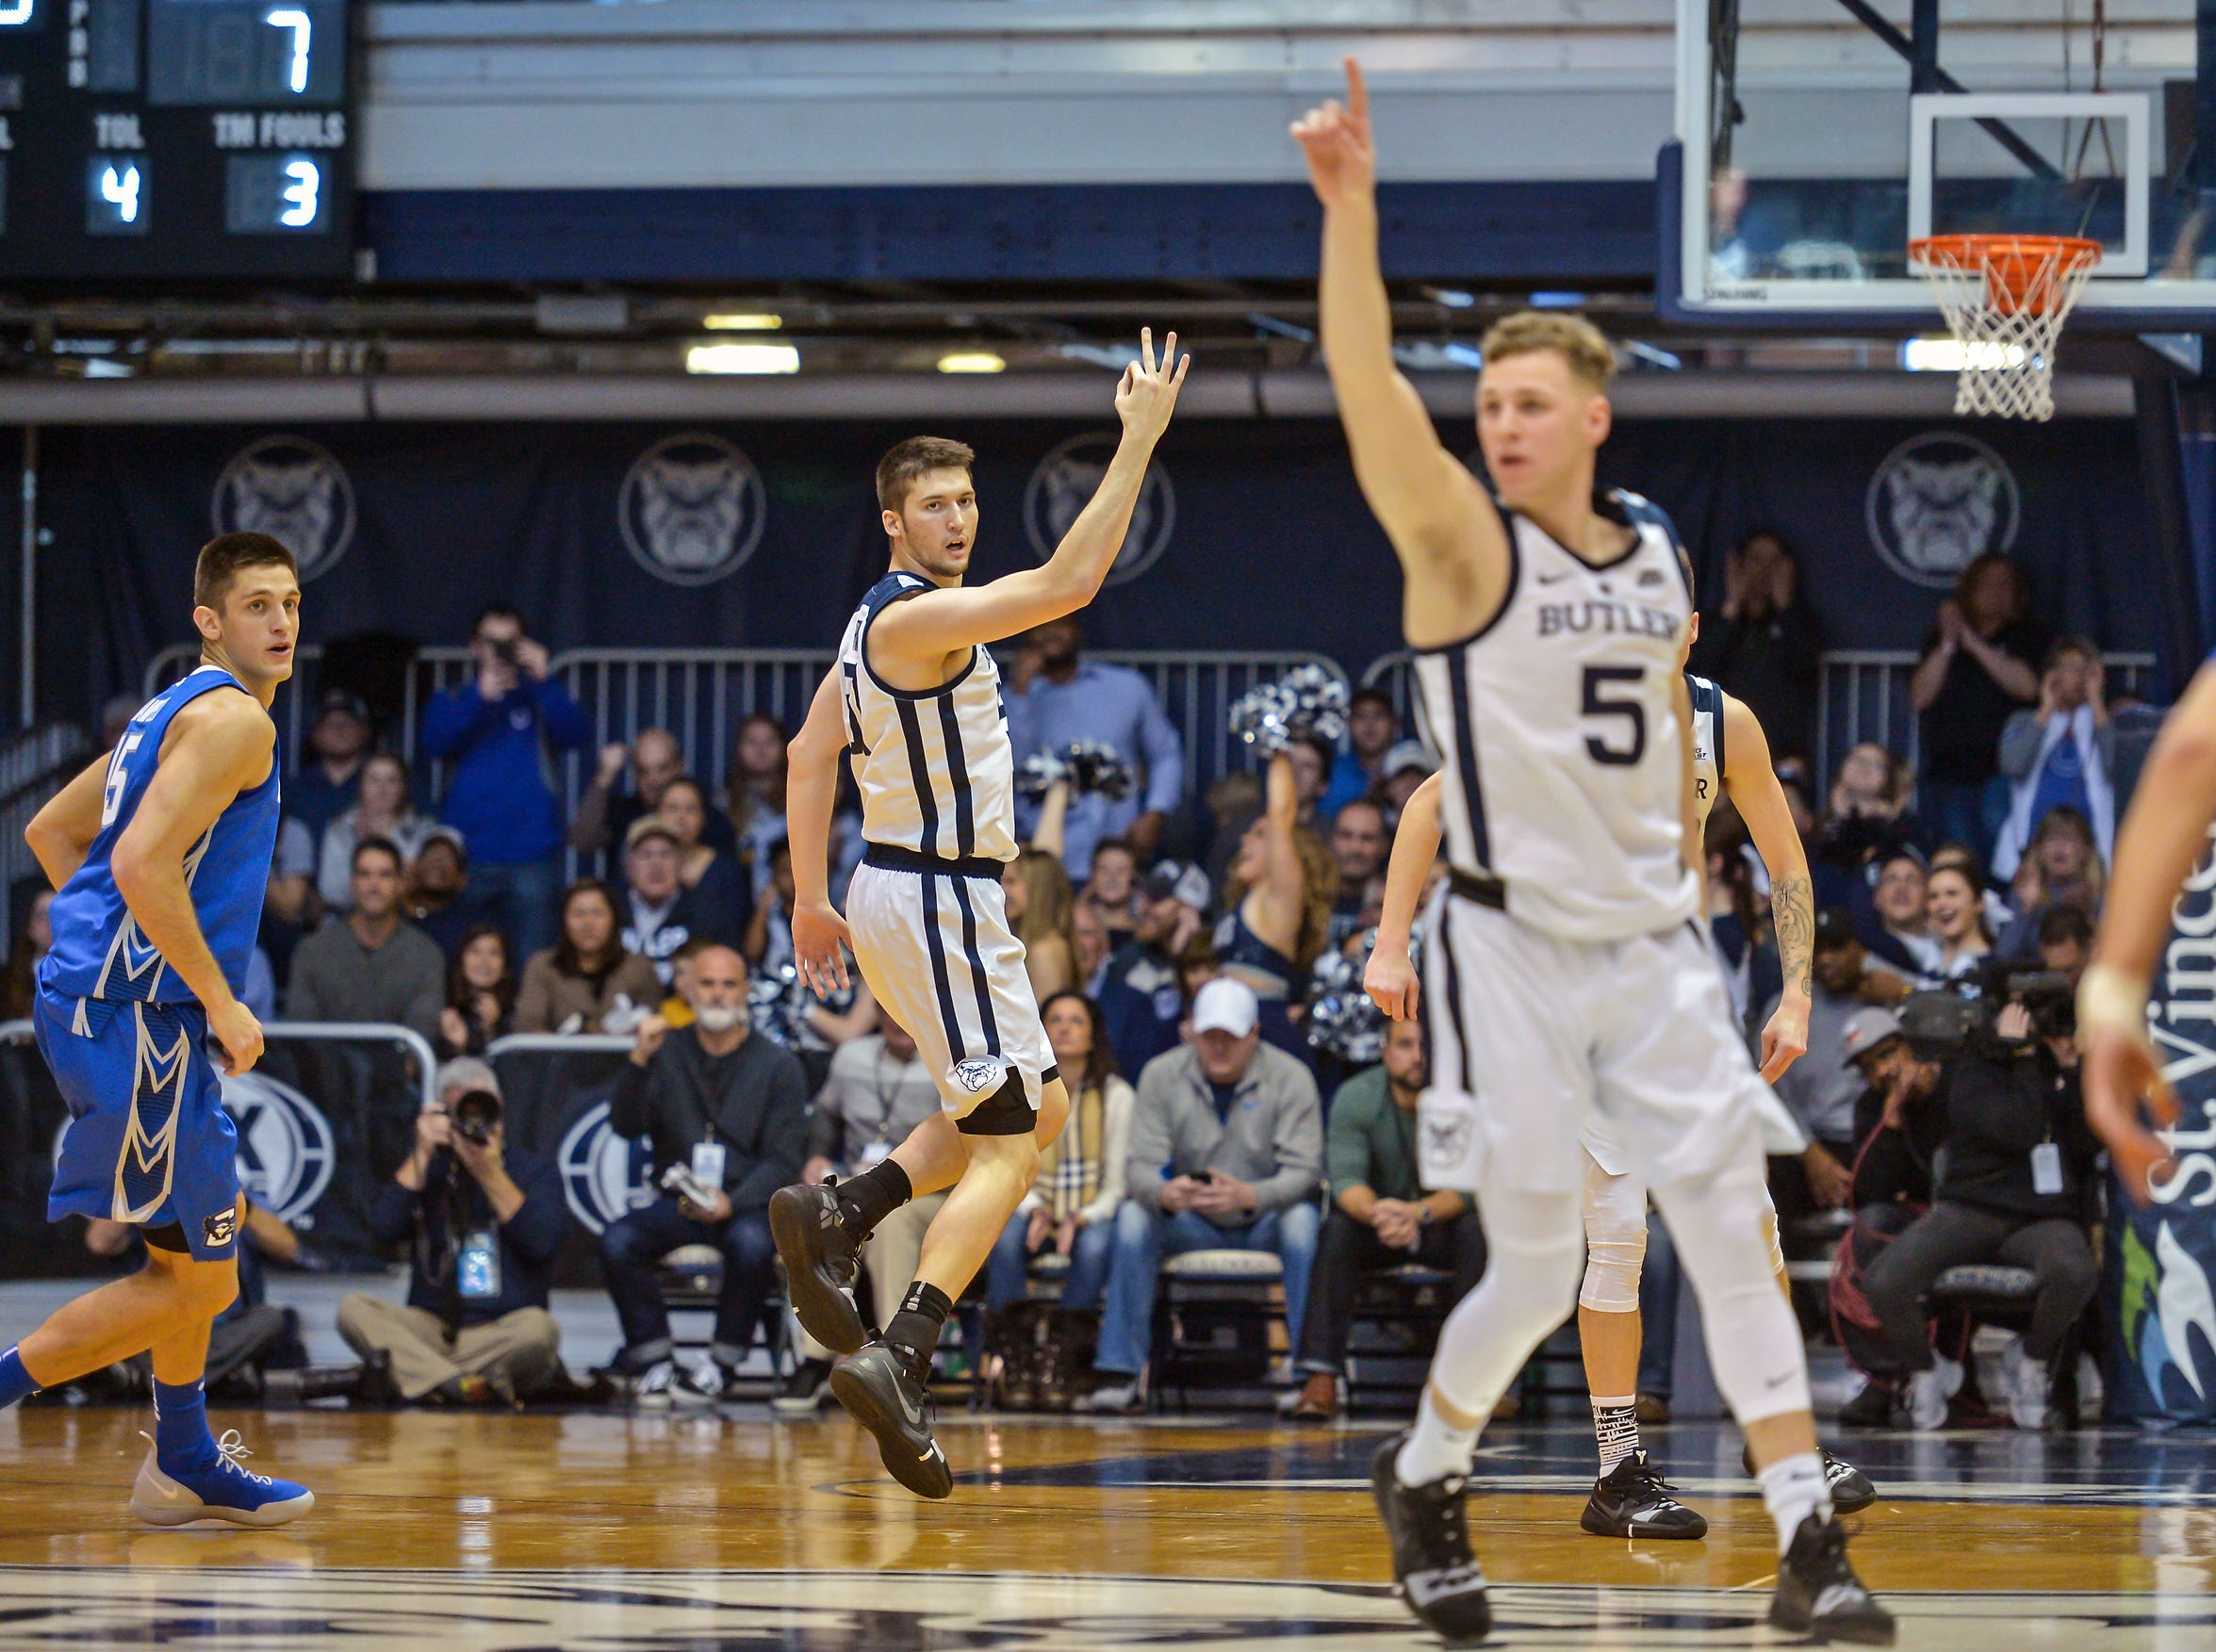 Butler Bulldogs forward Nate Fowler (51) celebrates a three-pointer against the Creighton Bluejays during the first half of game action between Butler University and Creighton University, at Hinkle Fieldhouse in Indianapolis, Indiana on Saturday, Jan. 5, 2019.